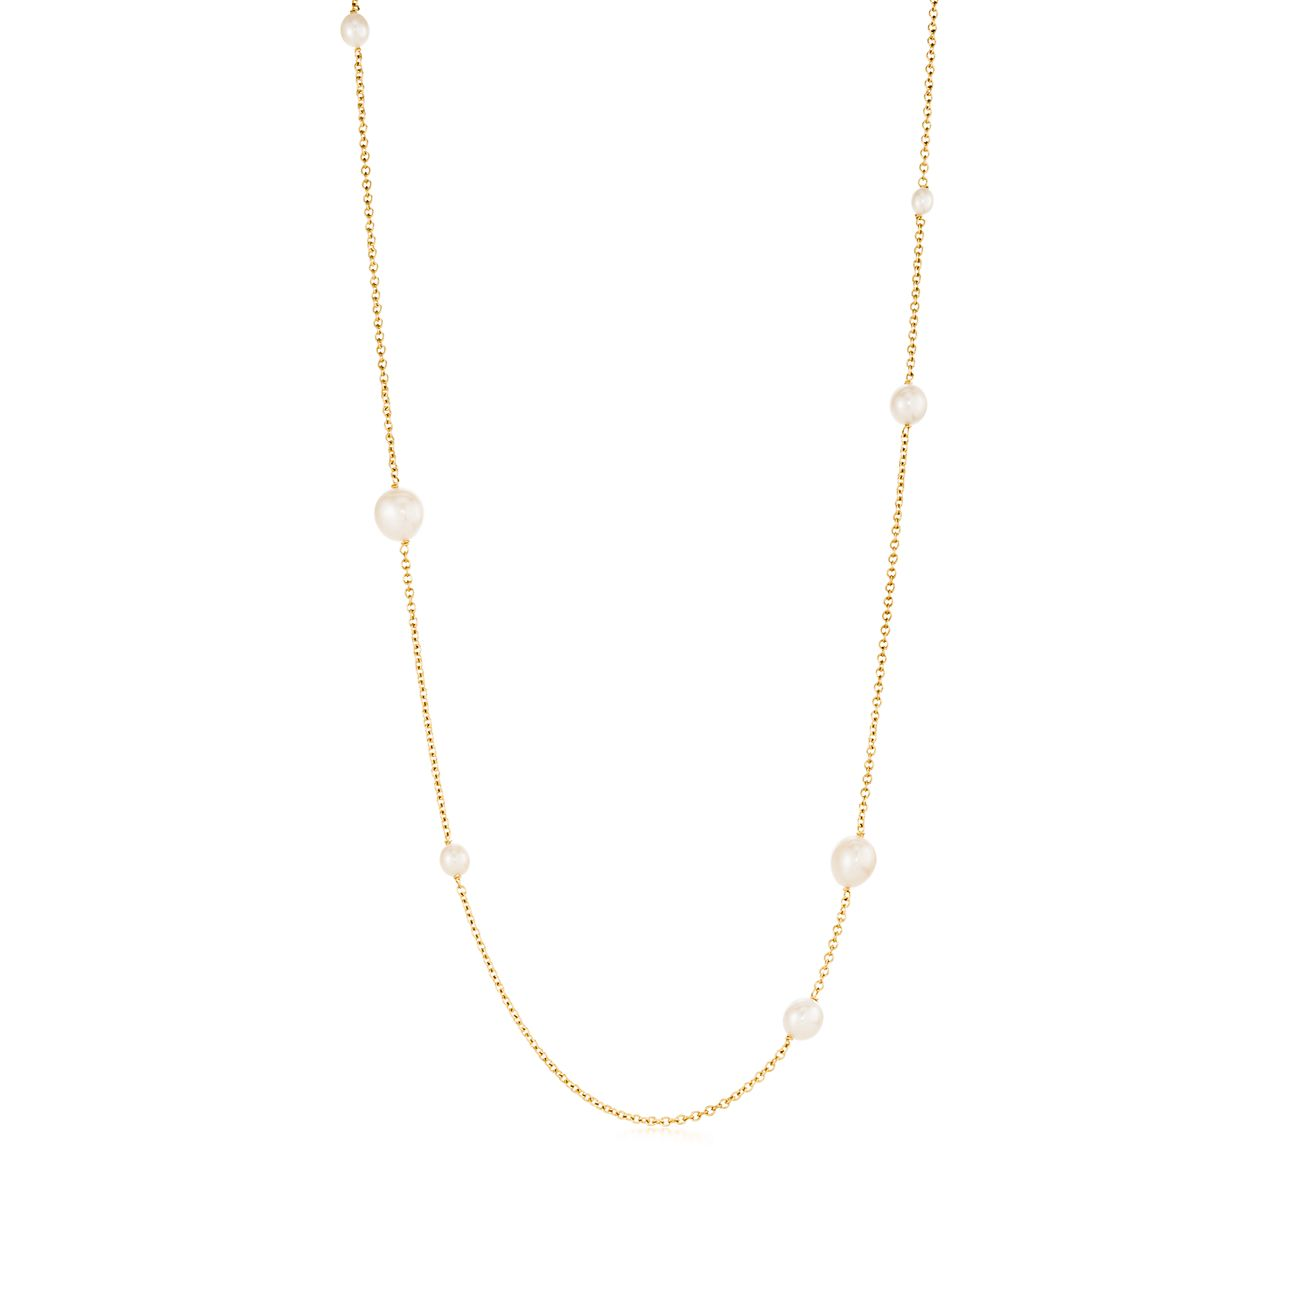 Elsa Peretti Pearls by the Yard necklace in 18k gold Tiffany & Co. BnNfz6H